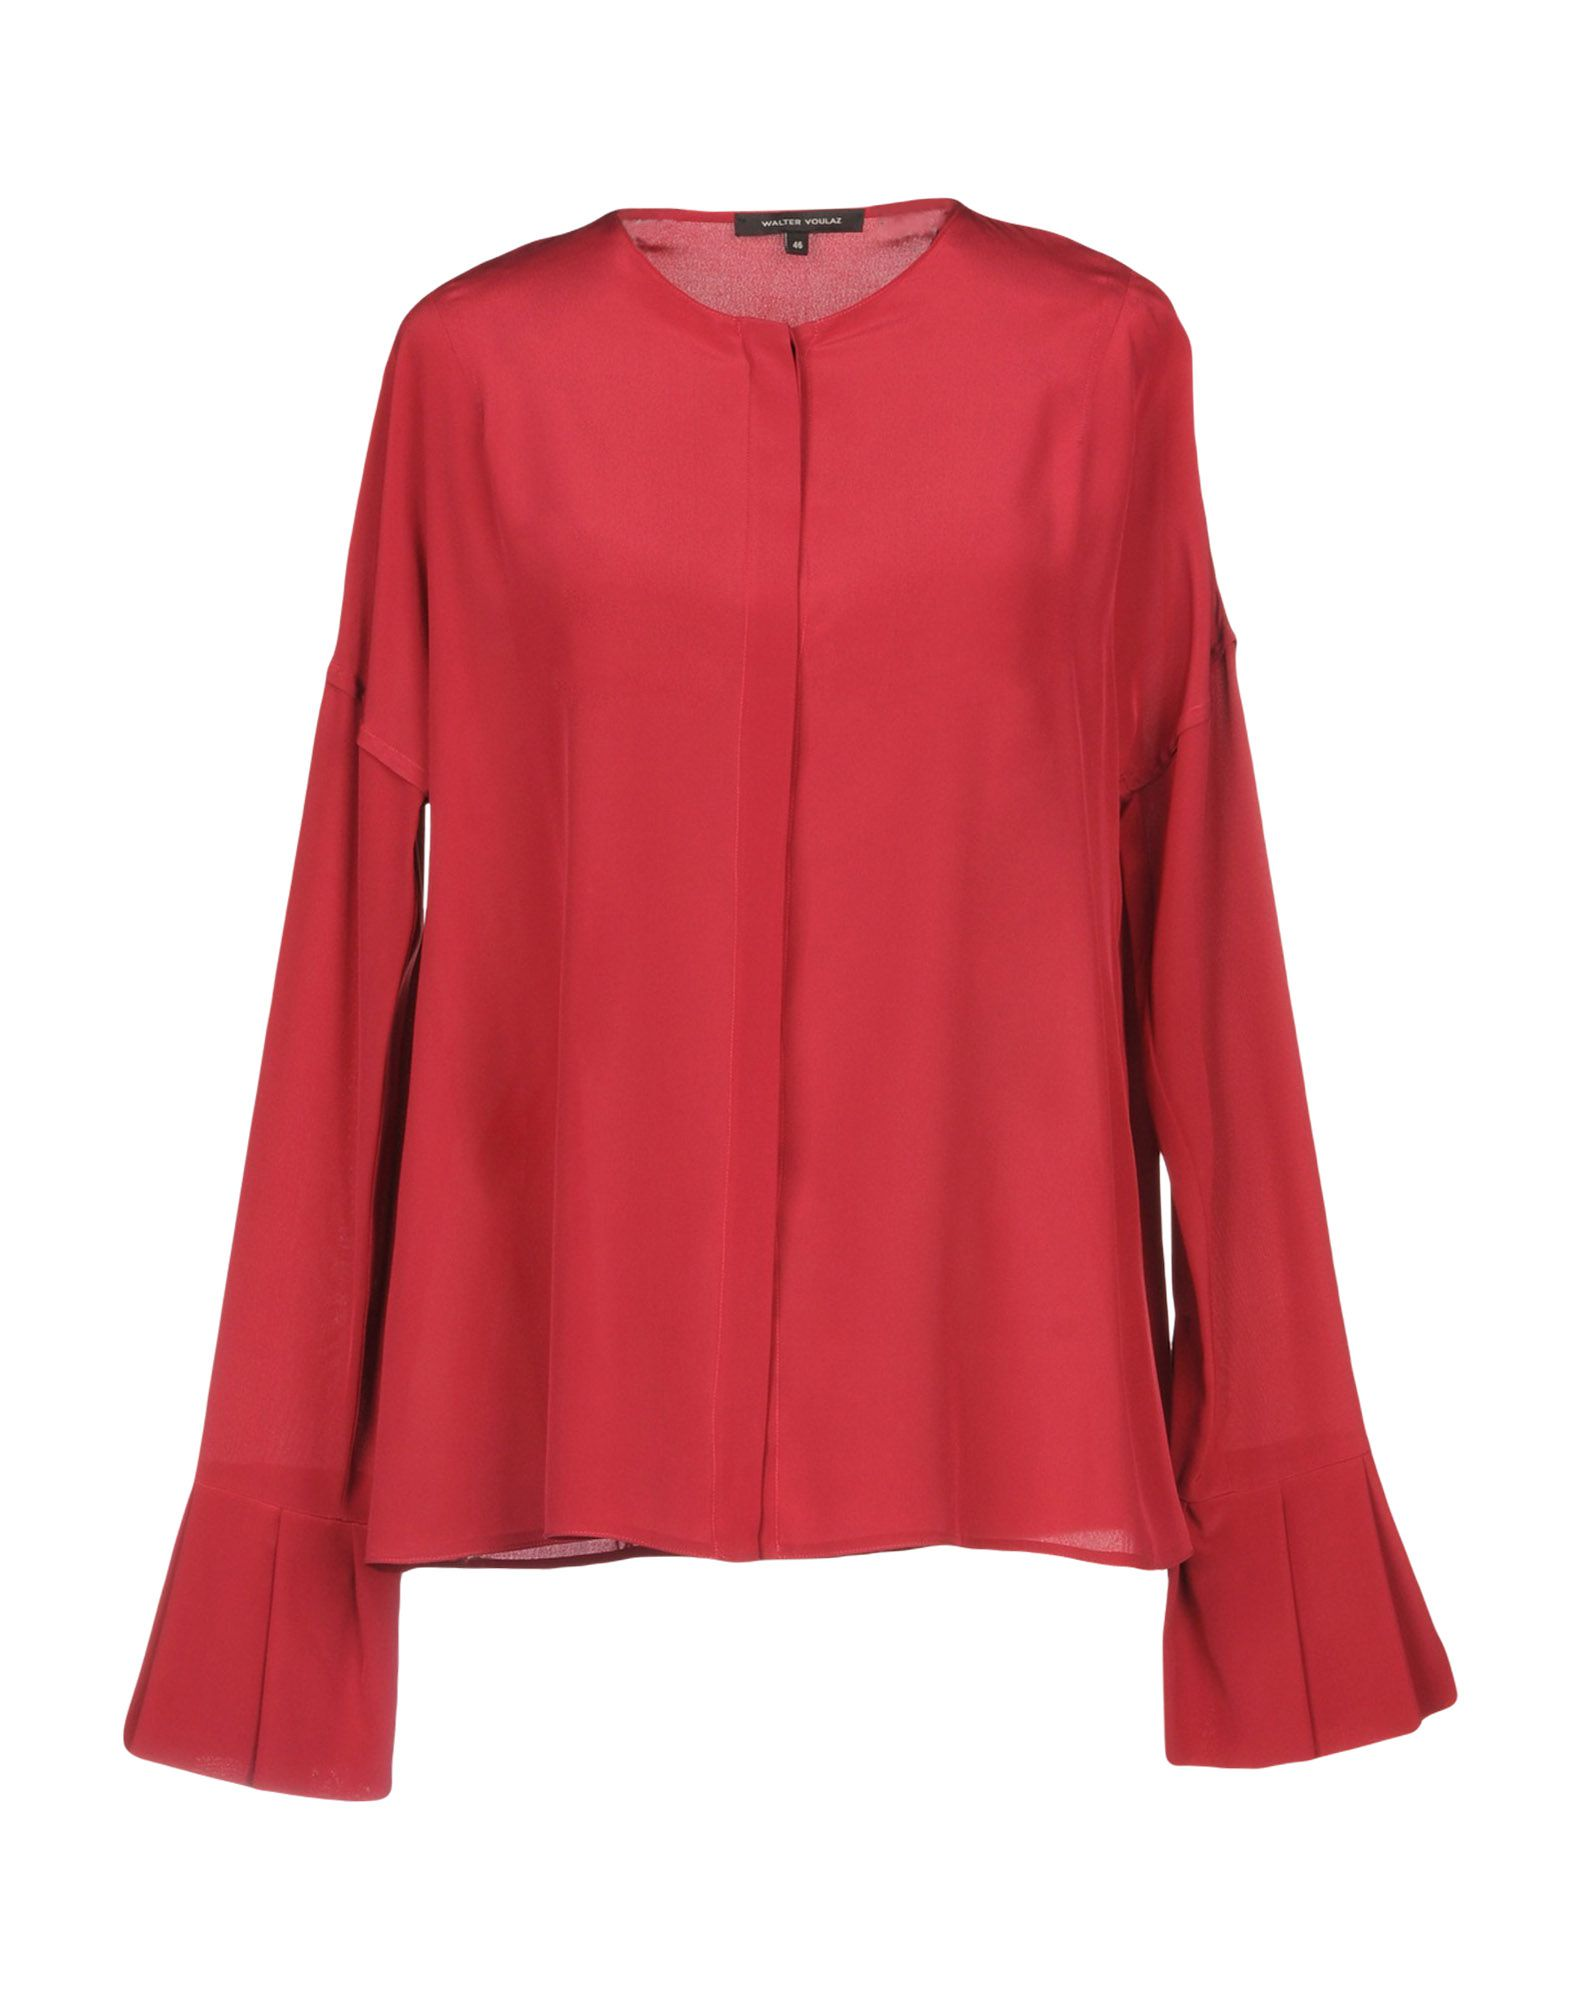 WALTER VOULAZ Silk Shirts & Blouses in Brick Red